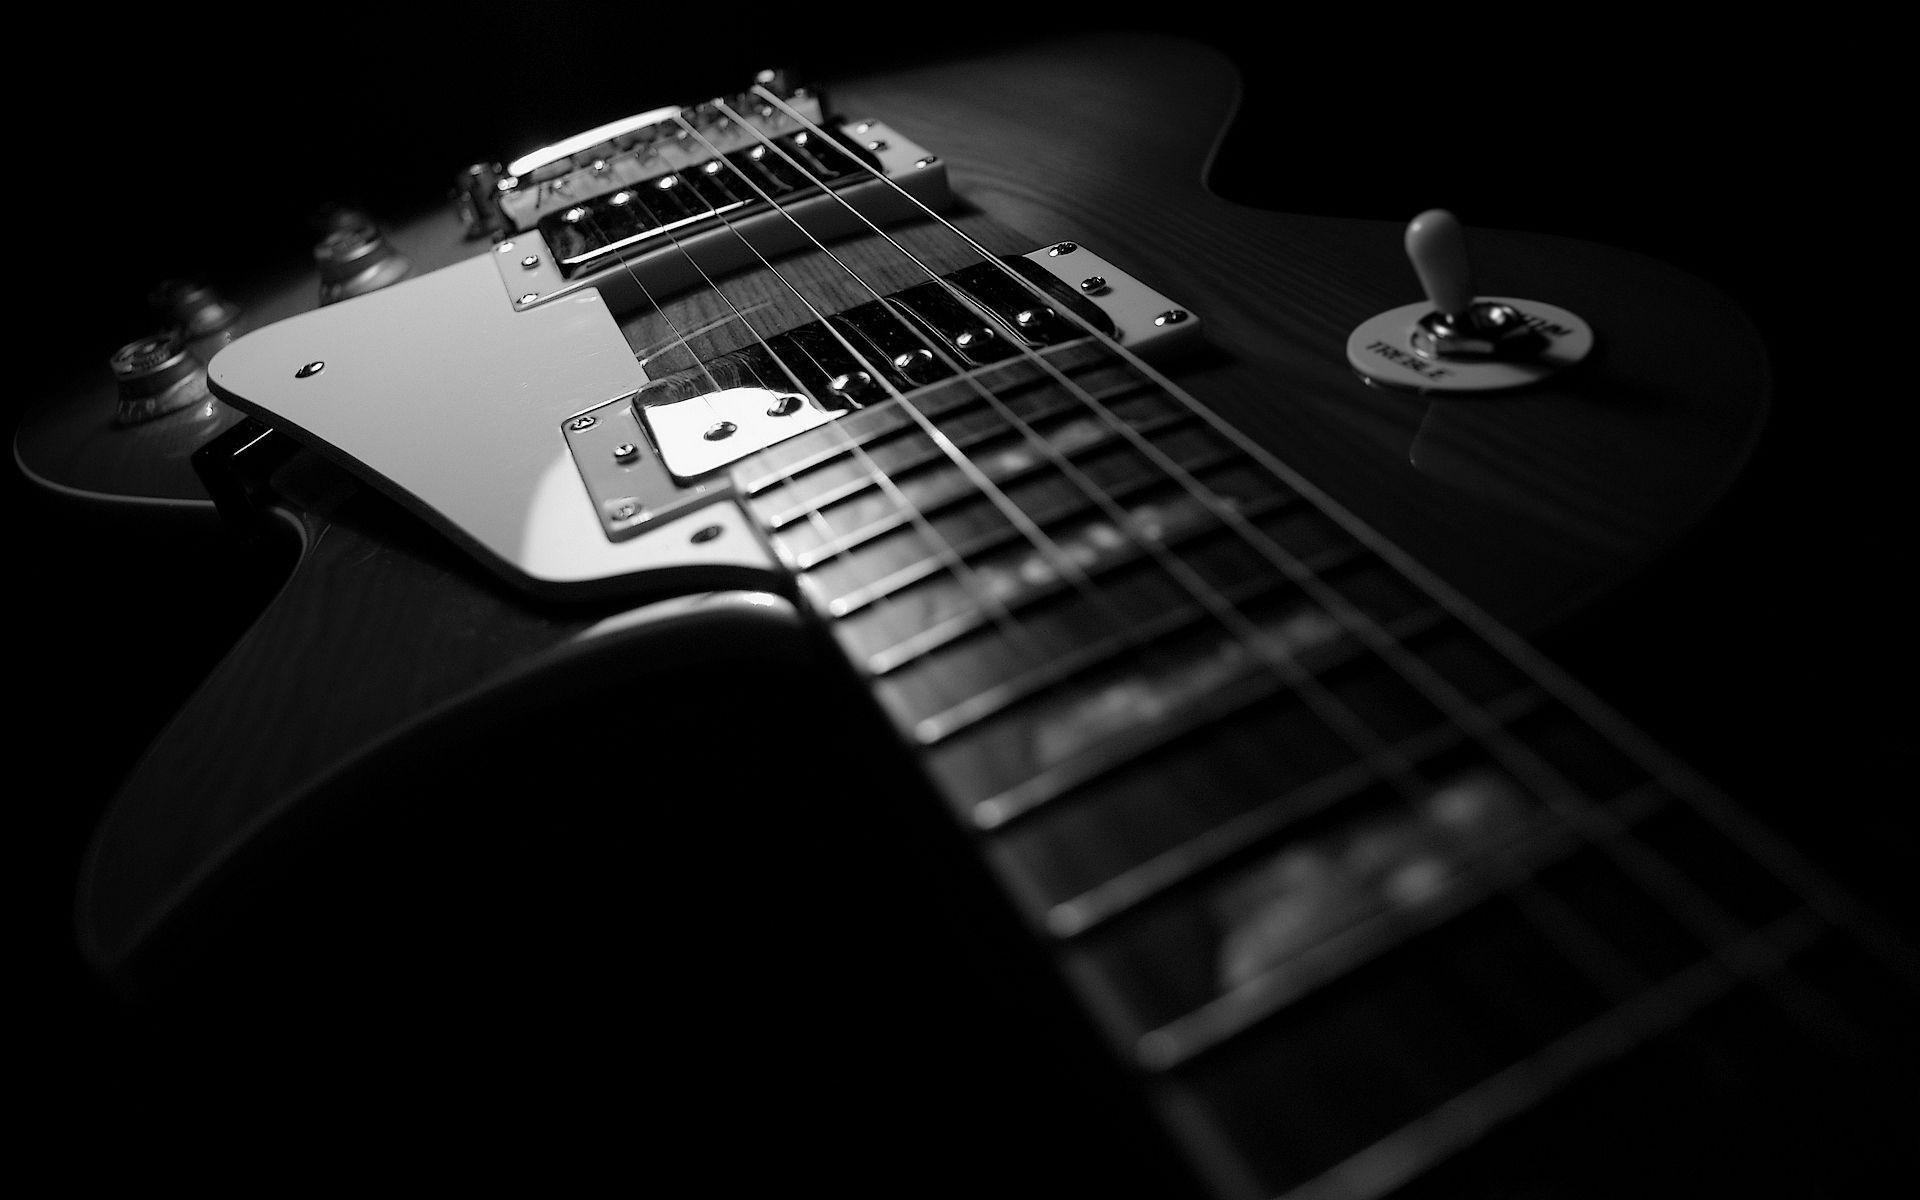 Guitar On Fire Wallpaper | Wallpaper Download